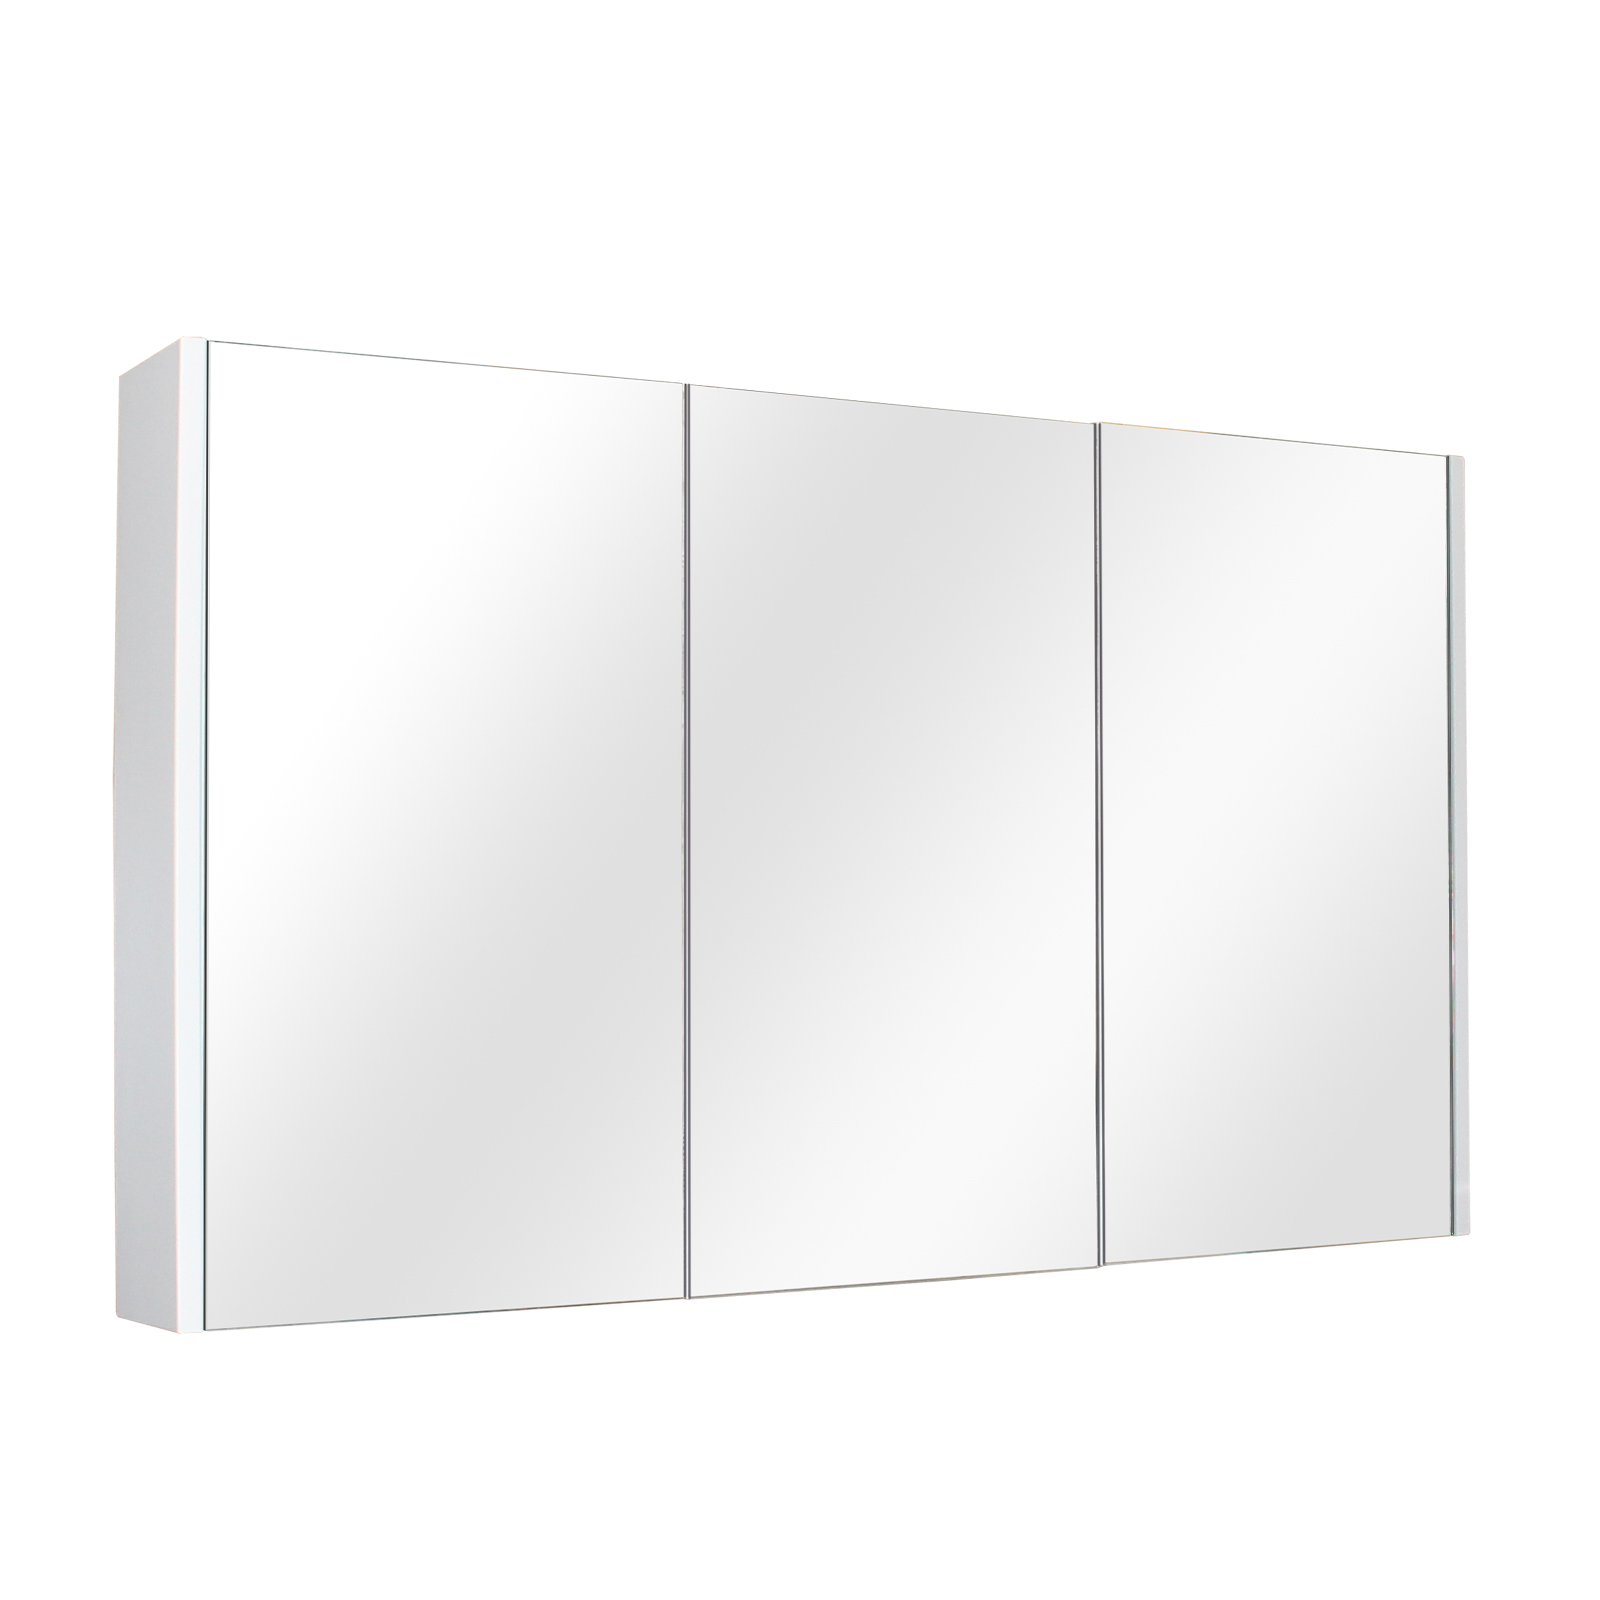 Paris 1200 Shaving Cabinet - Matt White